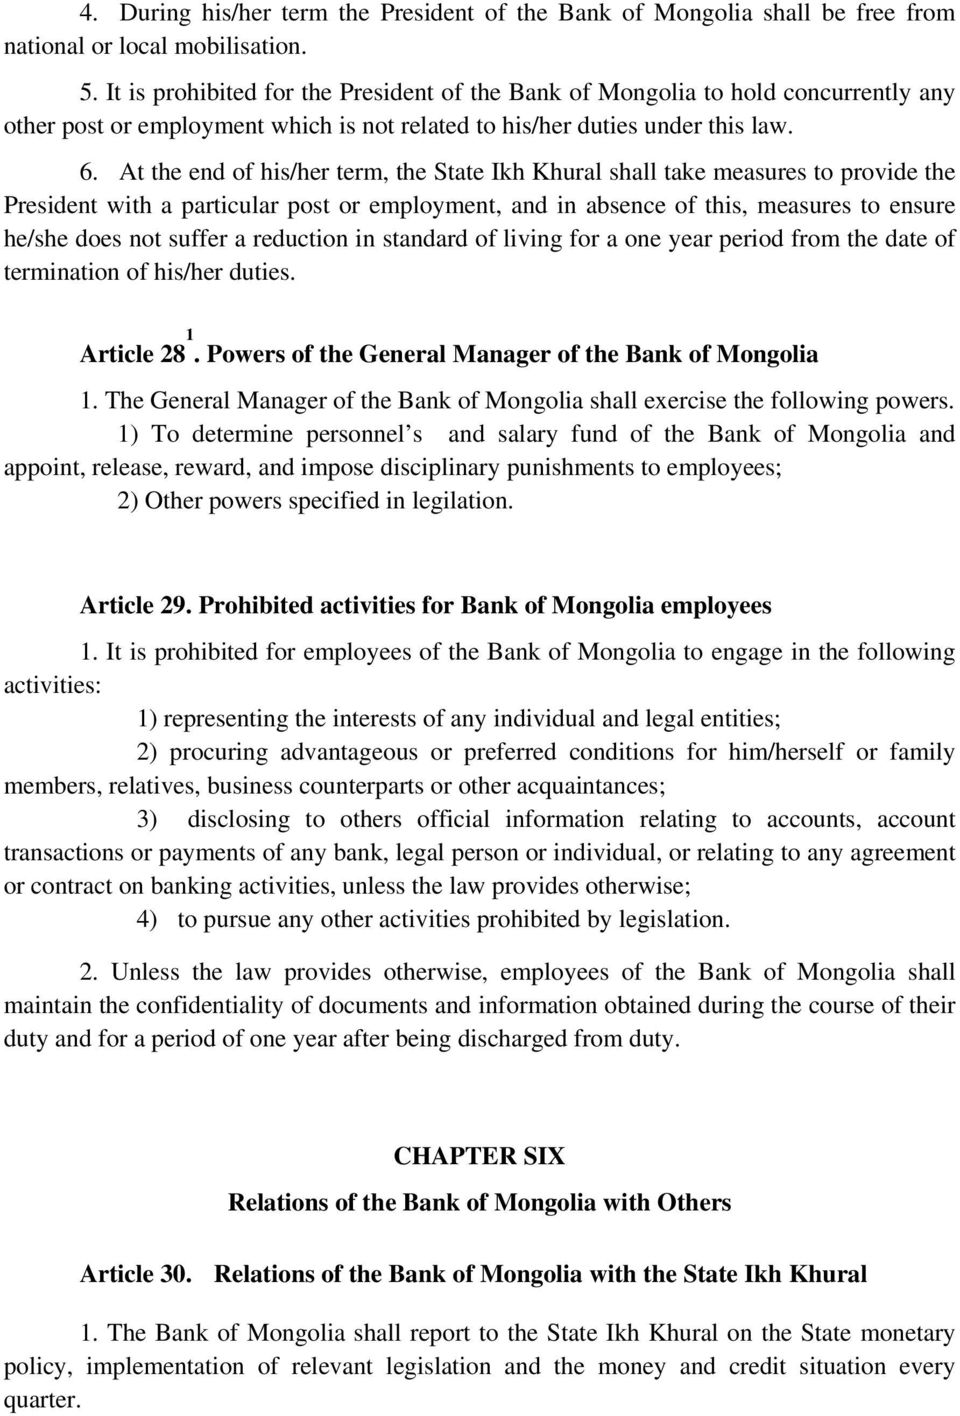 At the end of his/her term, the State Ikh Khural shall take measures to provide the President with a particular post or employment, and in absence of this, measures to ensure he/she does not suffer a